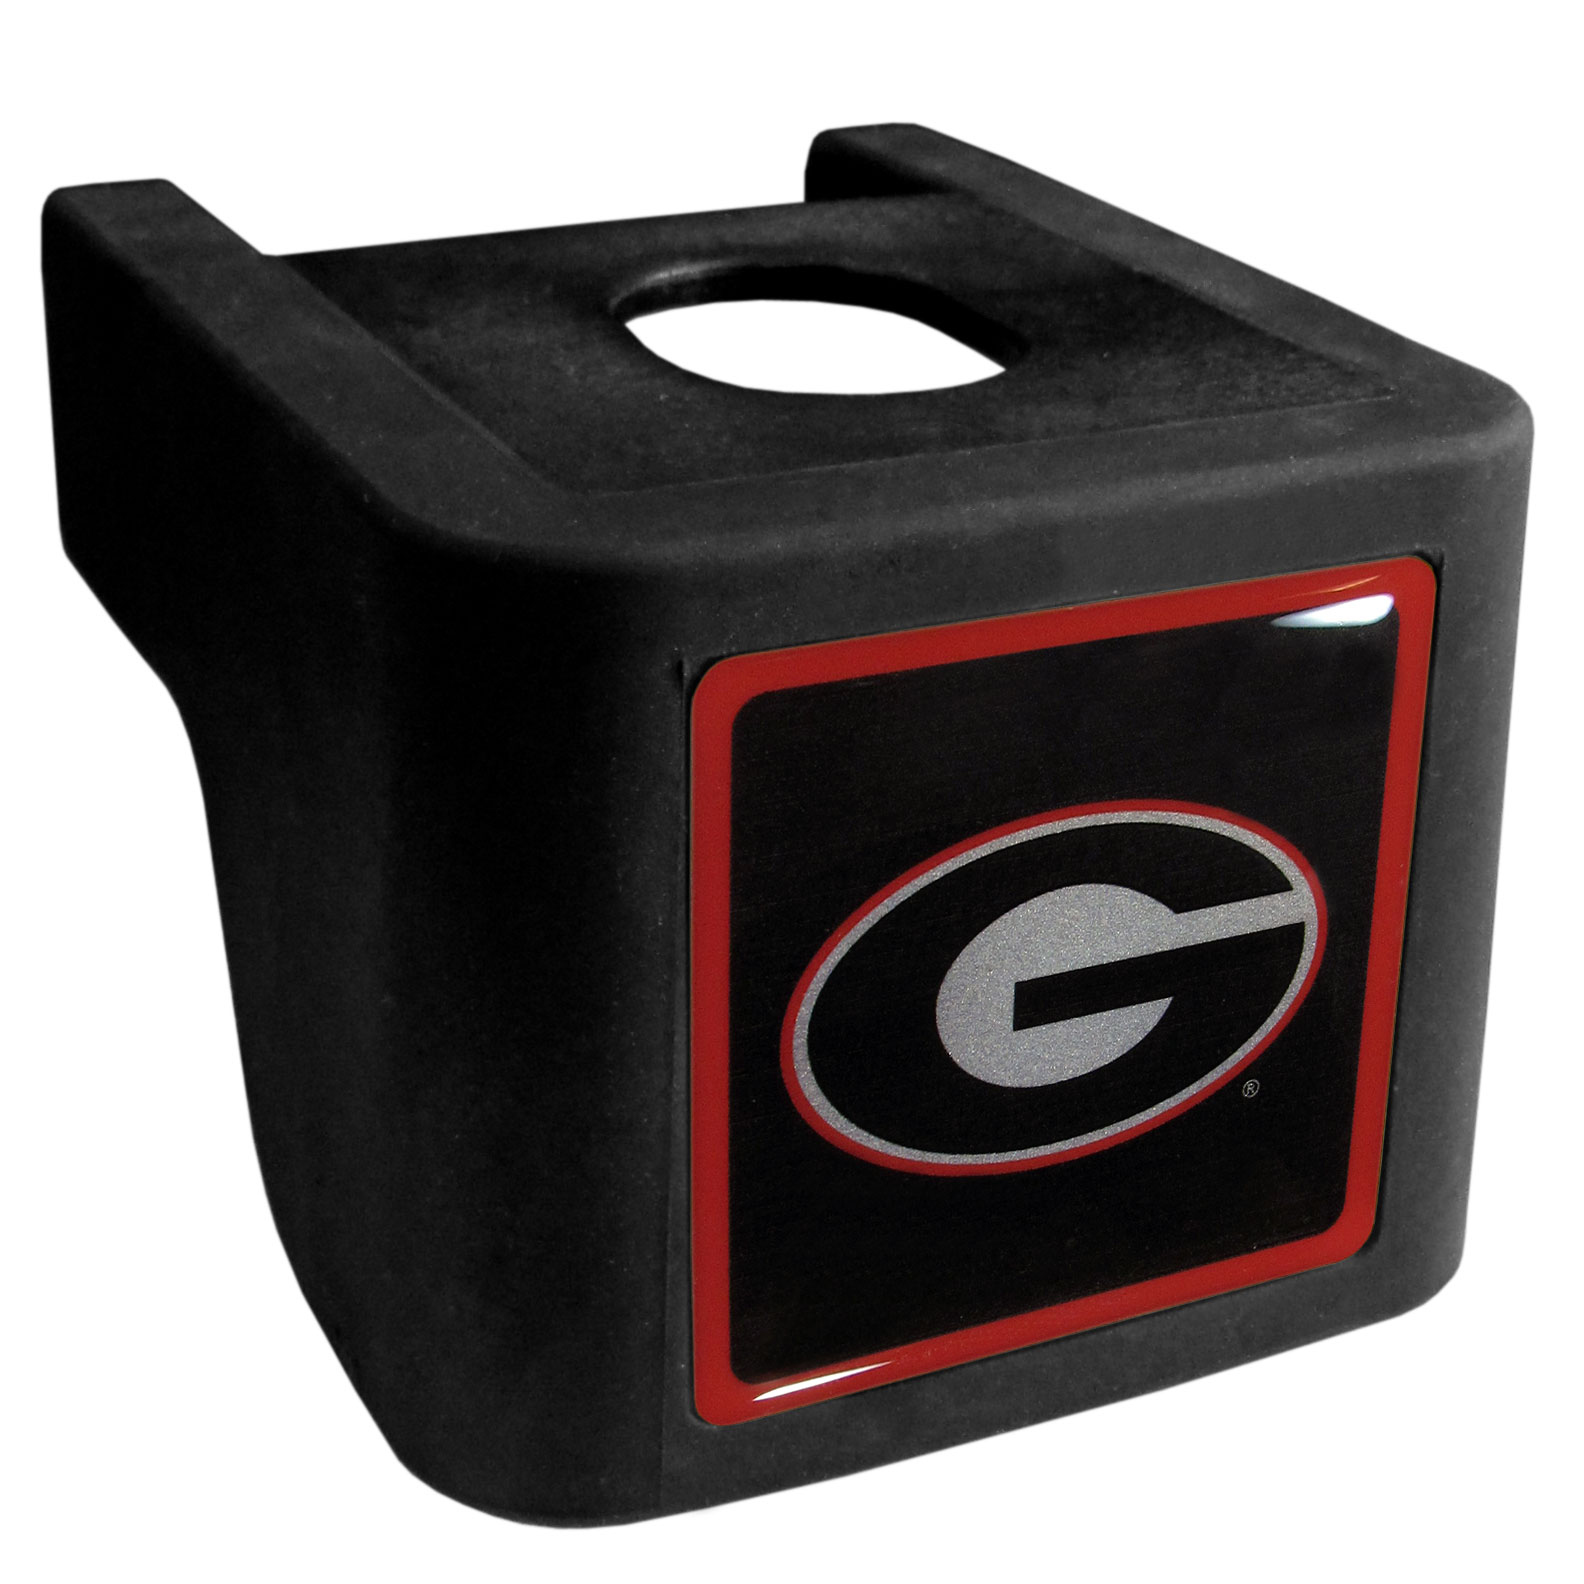 Georgia Bulldogs Shin Shield Hitch Cover - This unique hitch cover features a large Georgia Bulldogs logo. If you have ever hooked up a trailer or boat your have probably smashed your shins on the ball hitch a few times. This revolutionary shin shield hitch cover provides your much abused shins with the protection they deserve! The tough rubber hitch is rated to work with Class V hitch receivers hauling up to 17,000 gross trailer weight and 1,700 tongue weight allowing you to leave it on while hauling.